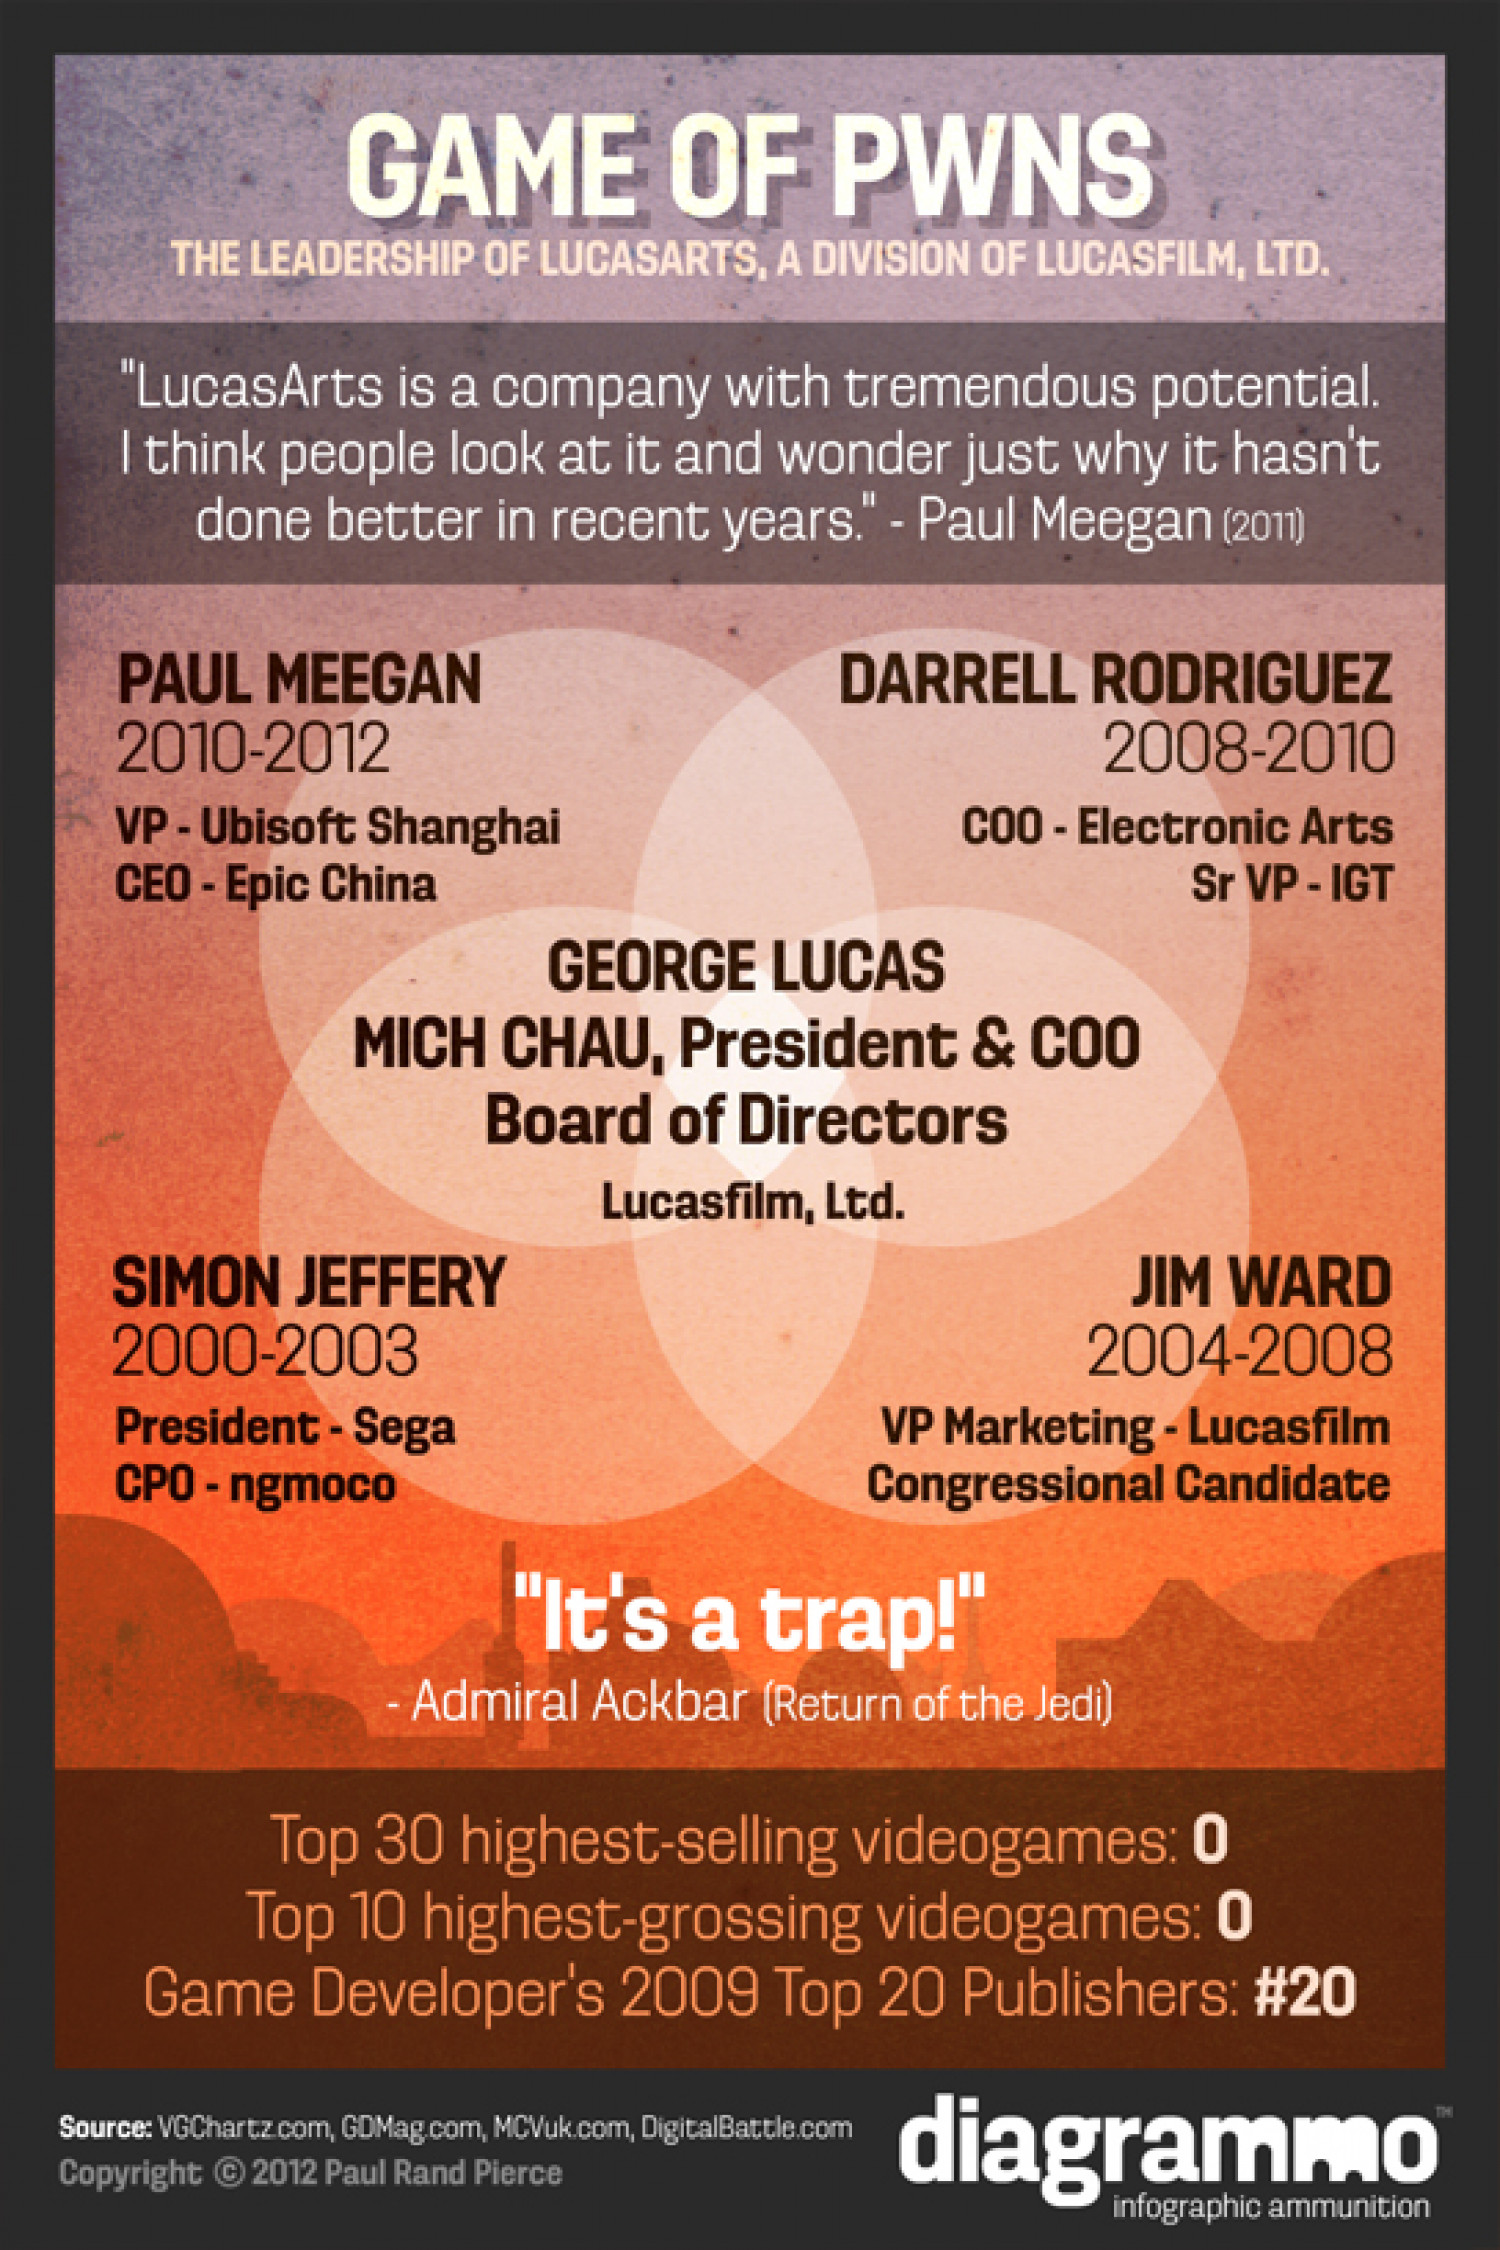 Game of Pwns: The Leadership of LucasArts Infographic